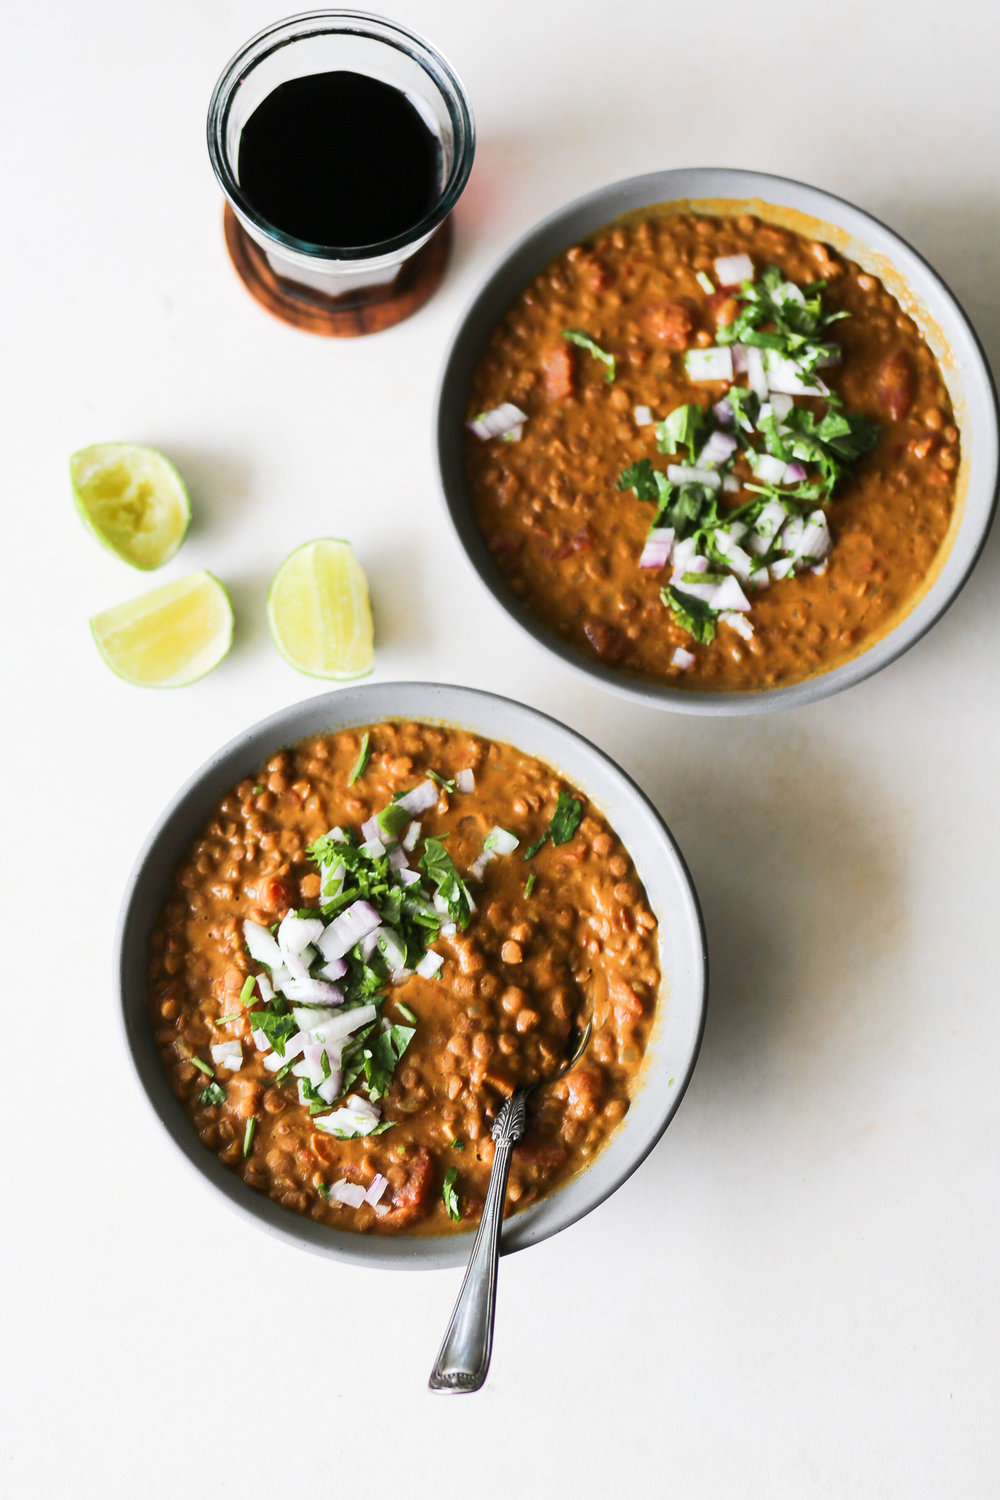 Instant Pot Curried Pumpkin & Lentil Soup | Set the Table #instantpotrecipes #curry #lentilsoup #weeknightmeals